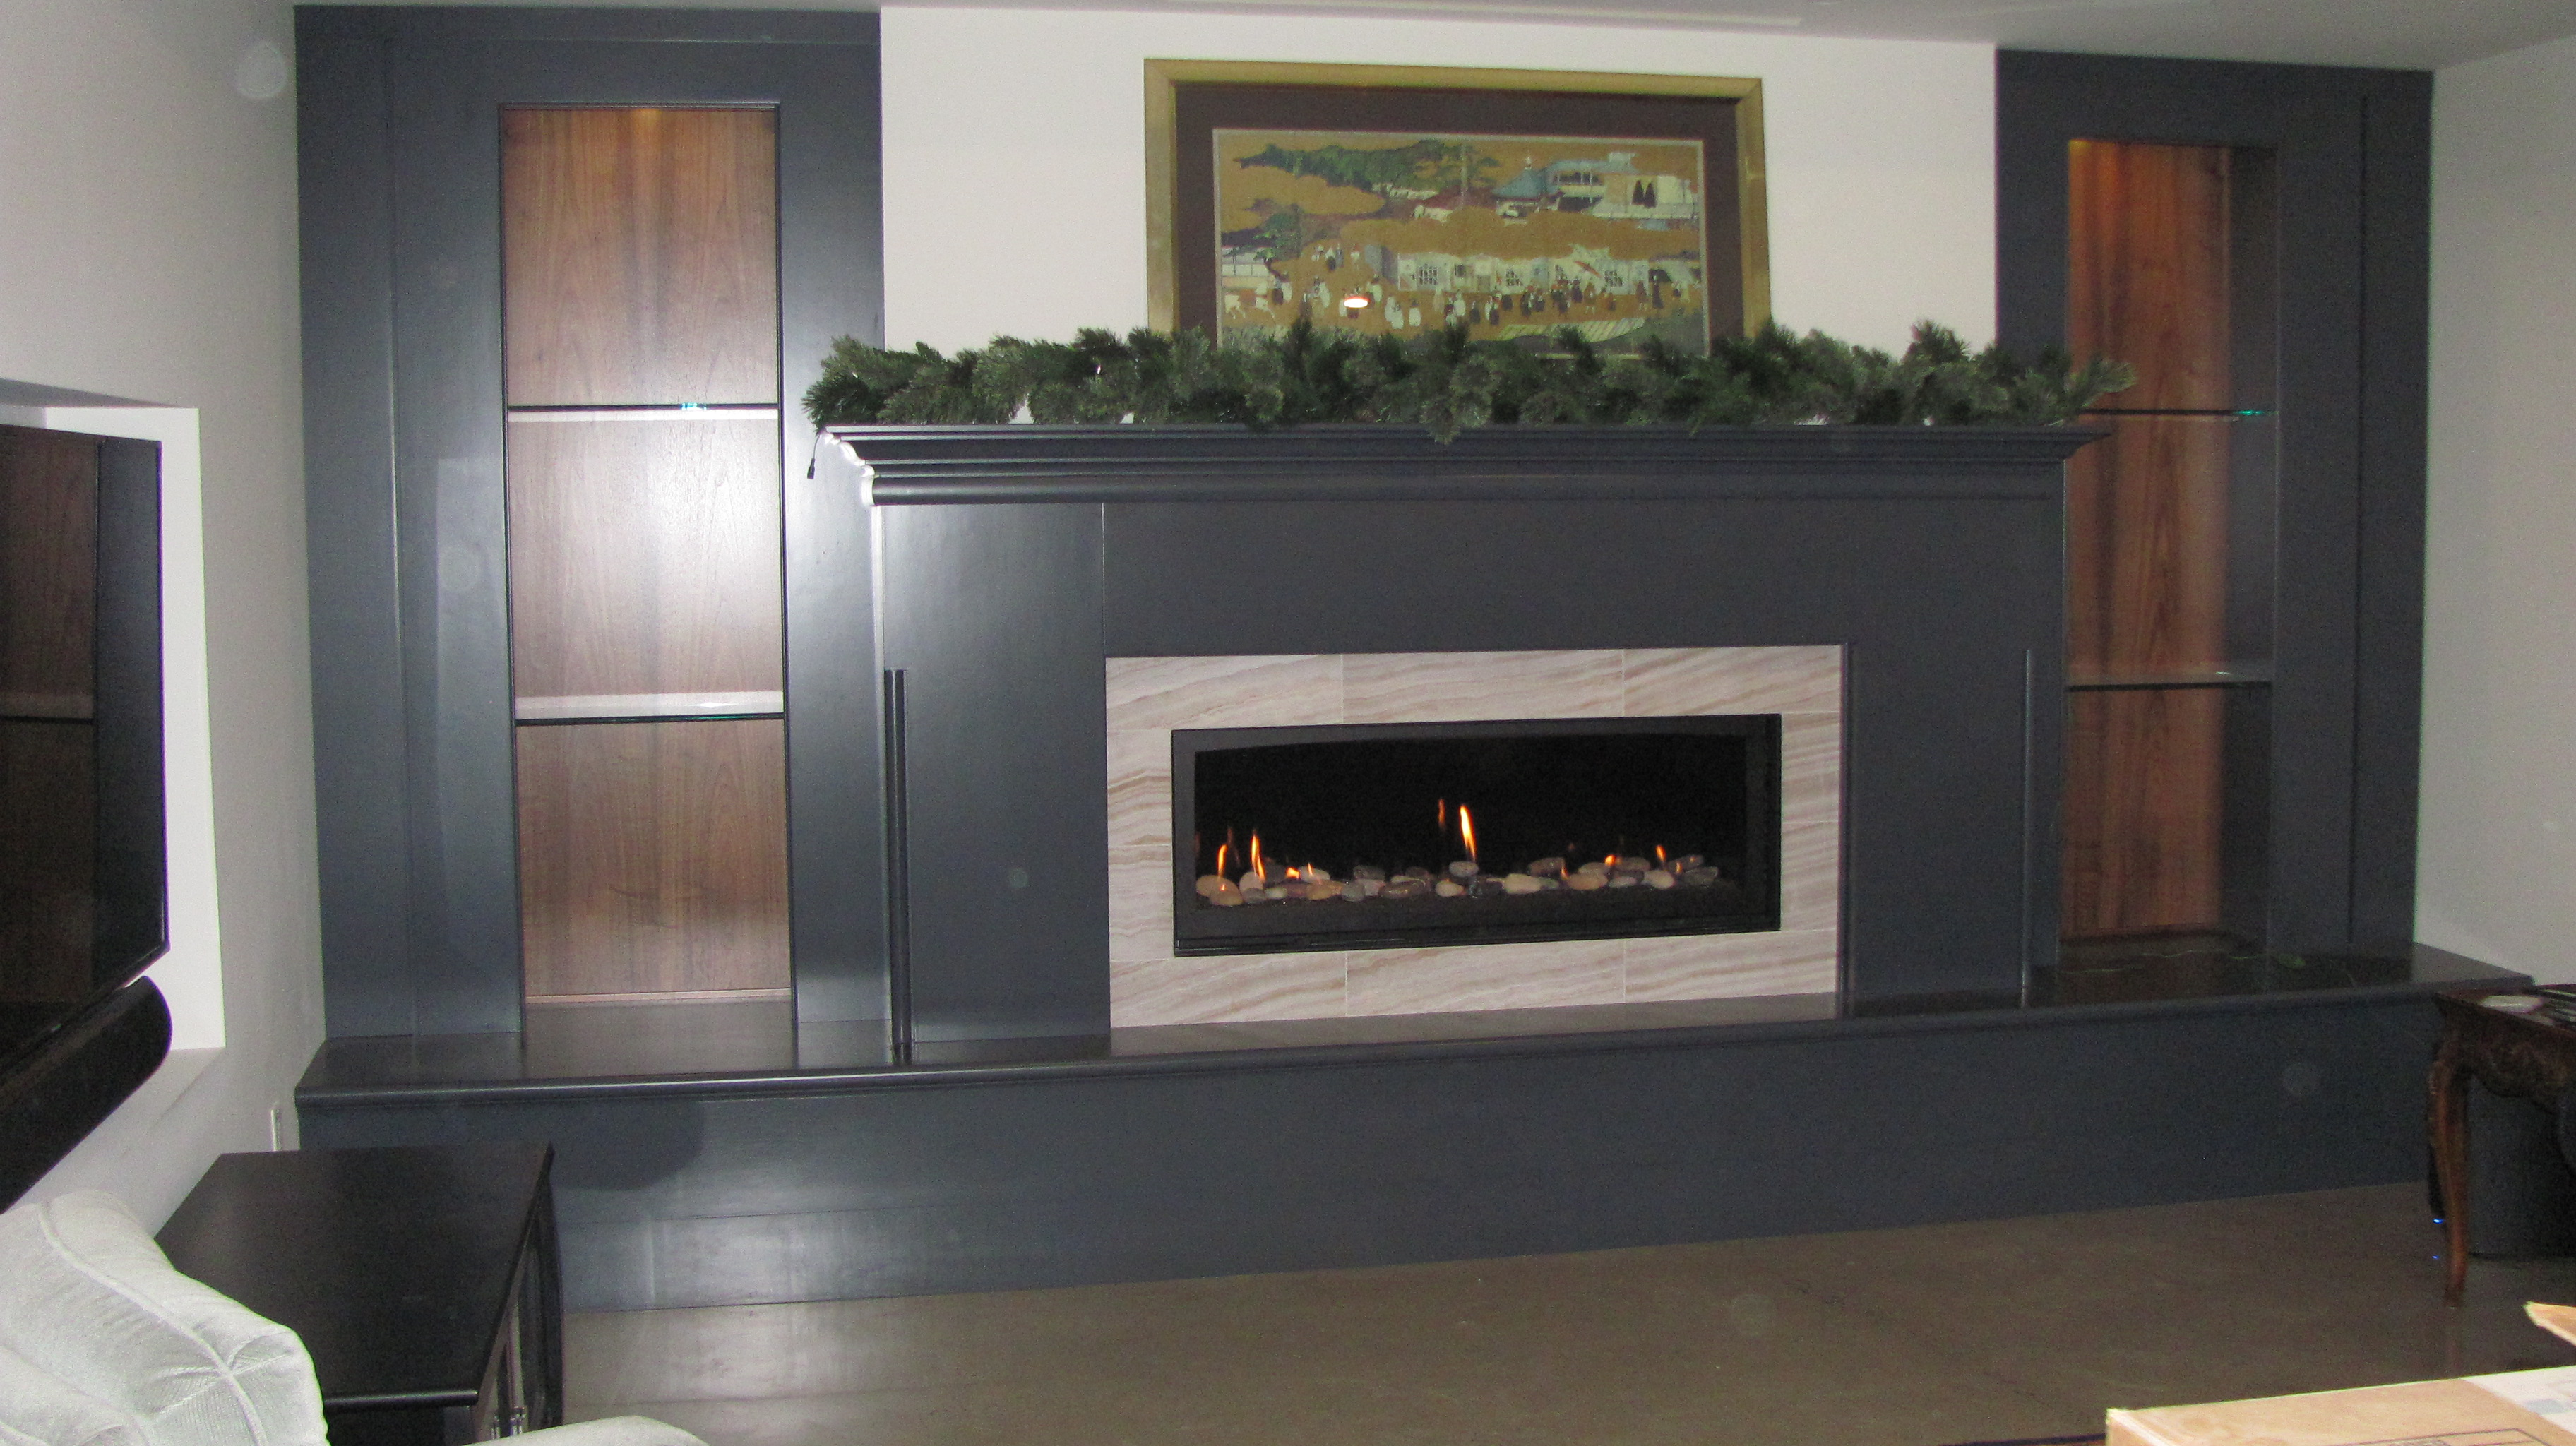 royal staged blaze modern mounted products fireplace ignis with crystals inch wall electric